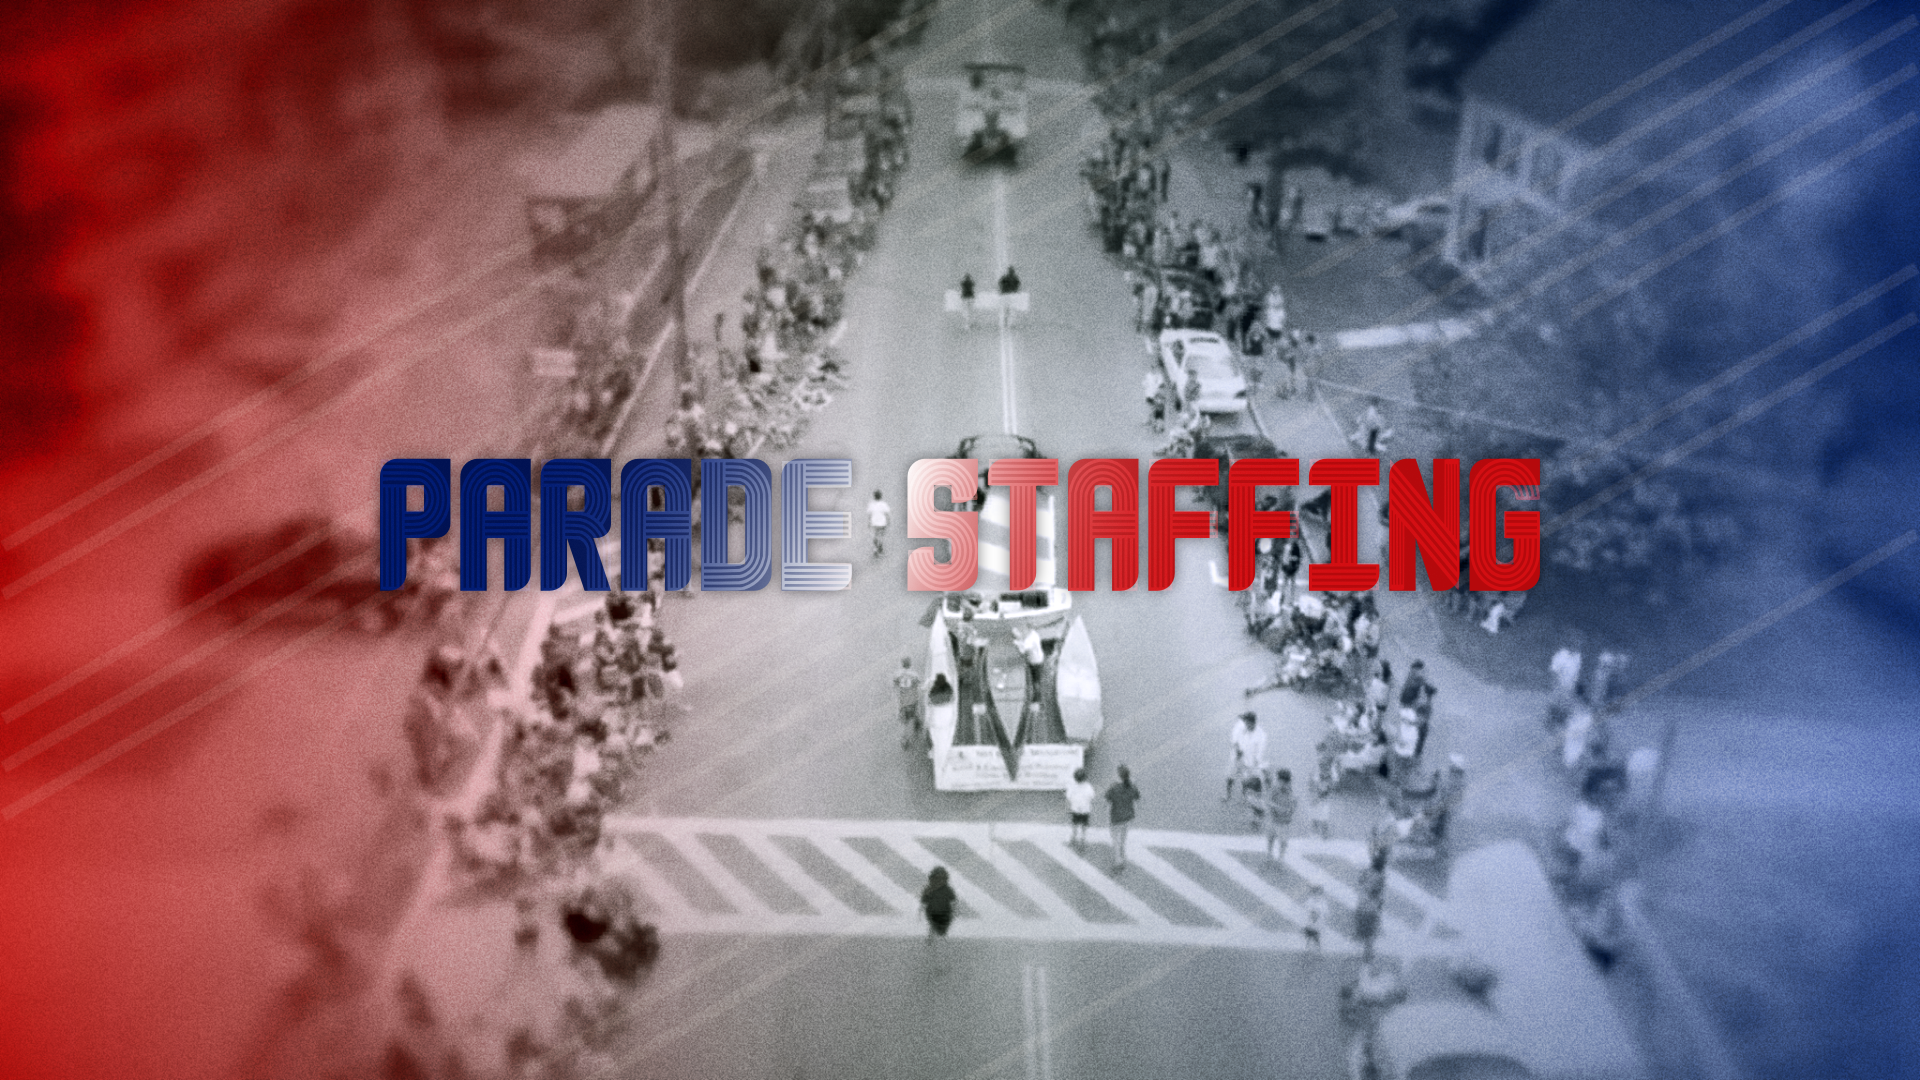 Parade Staffing blank.png